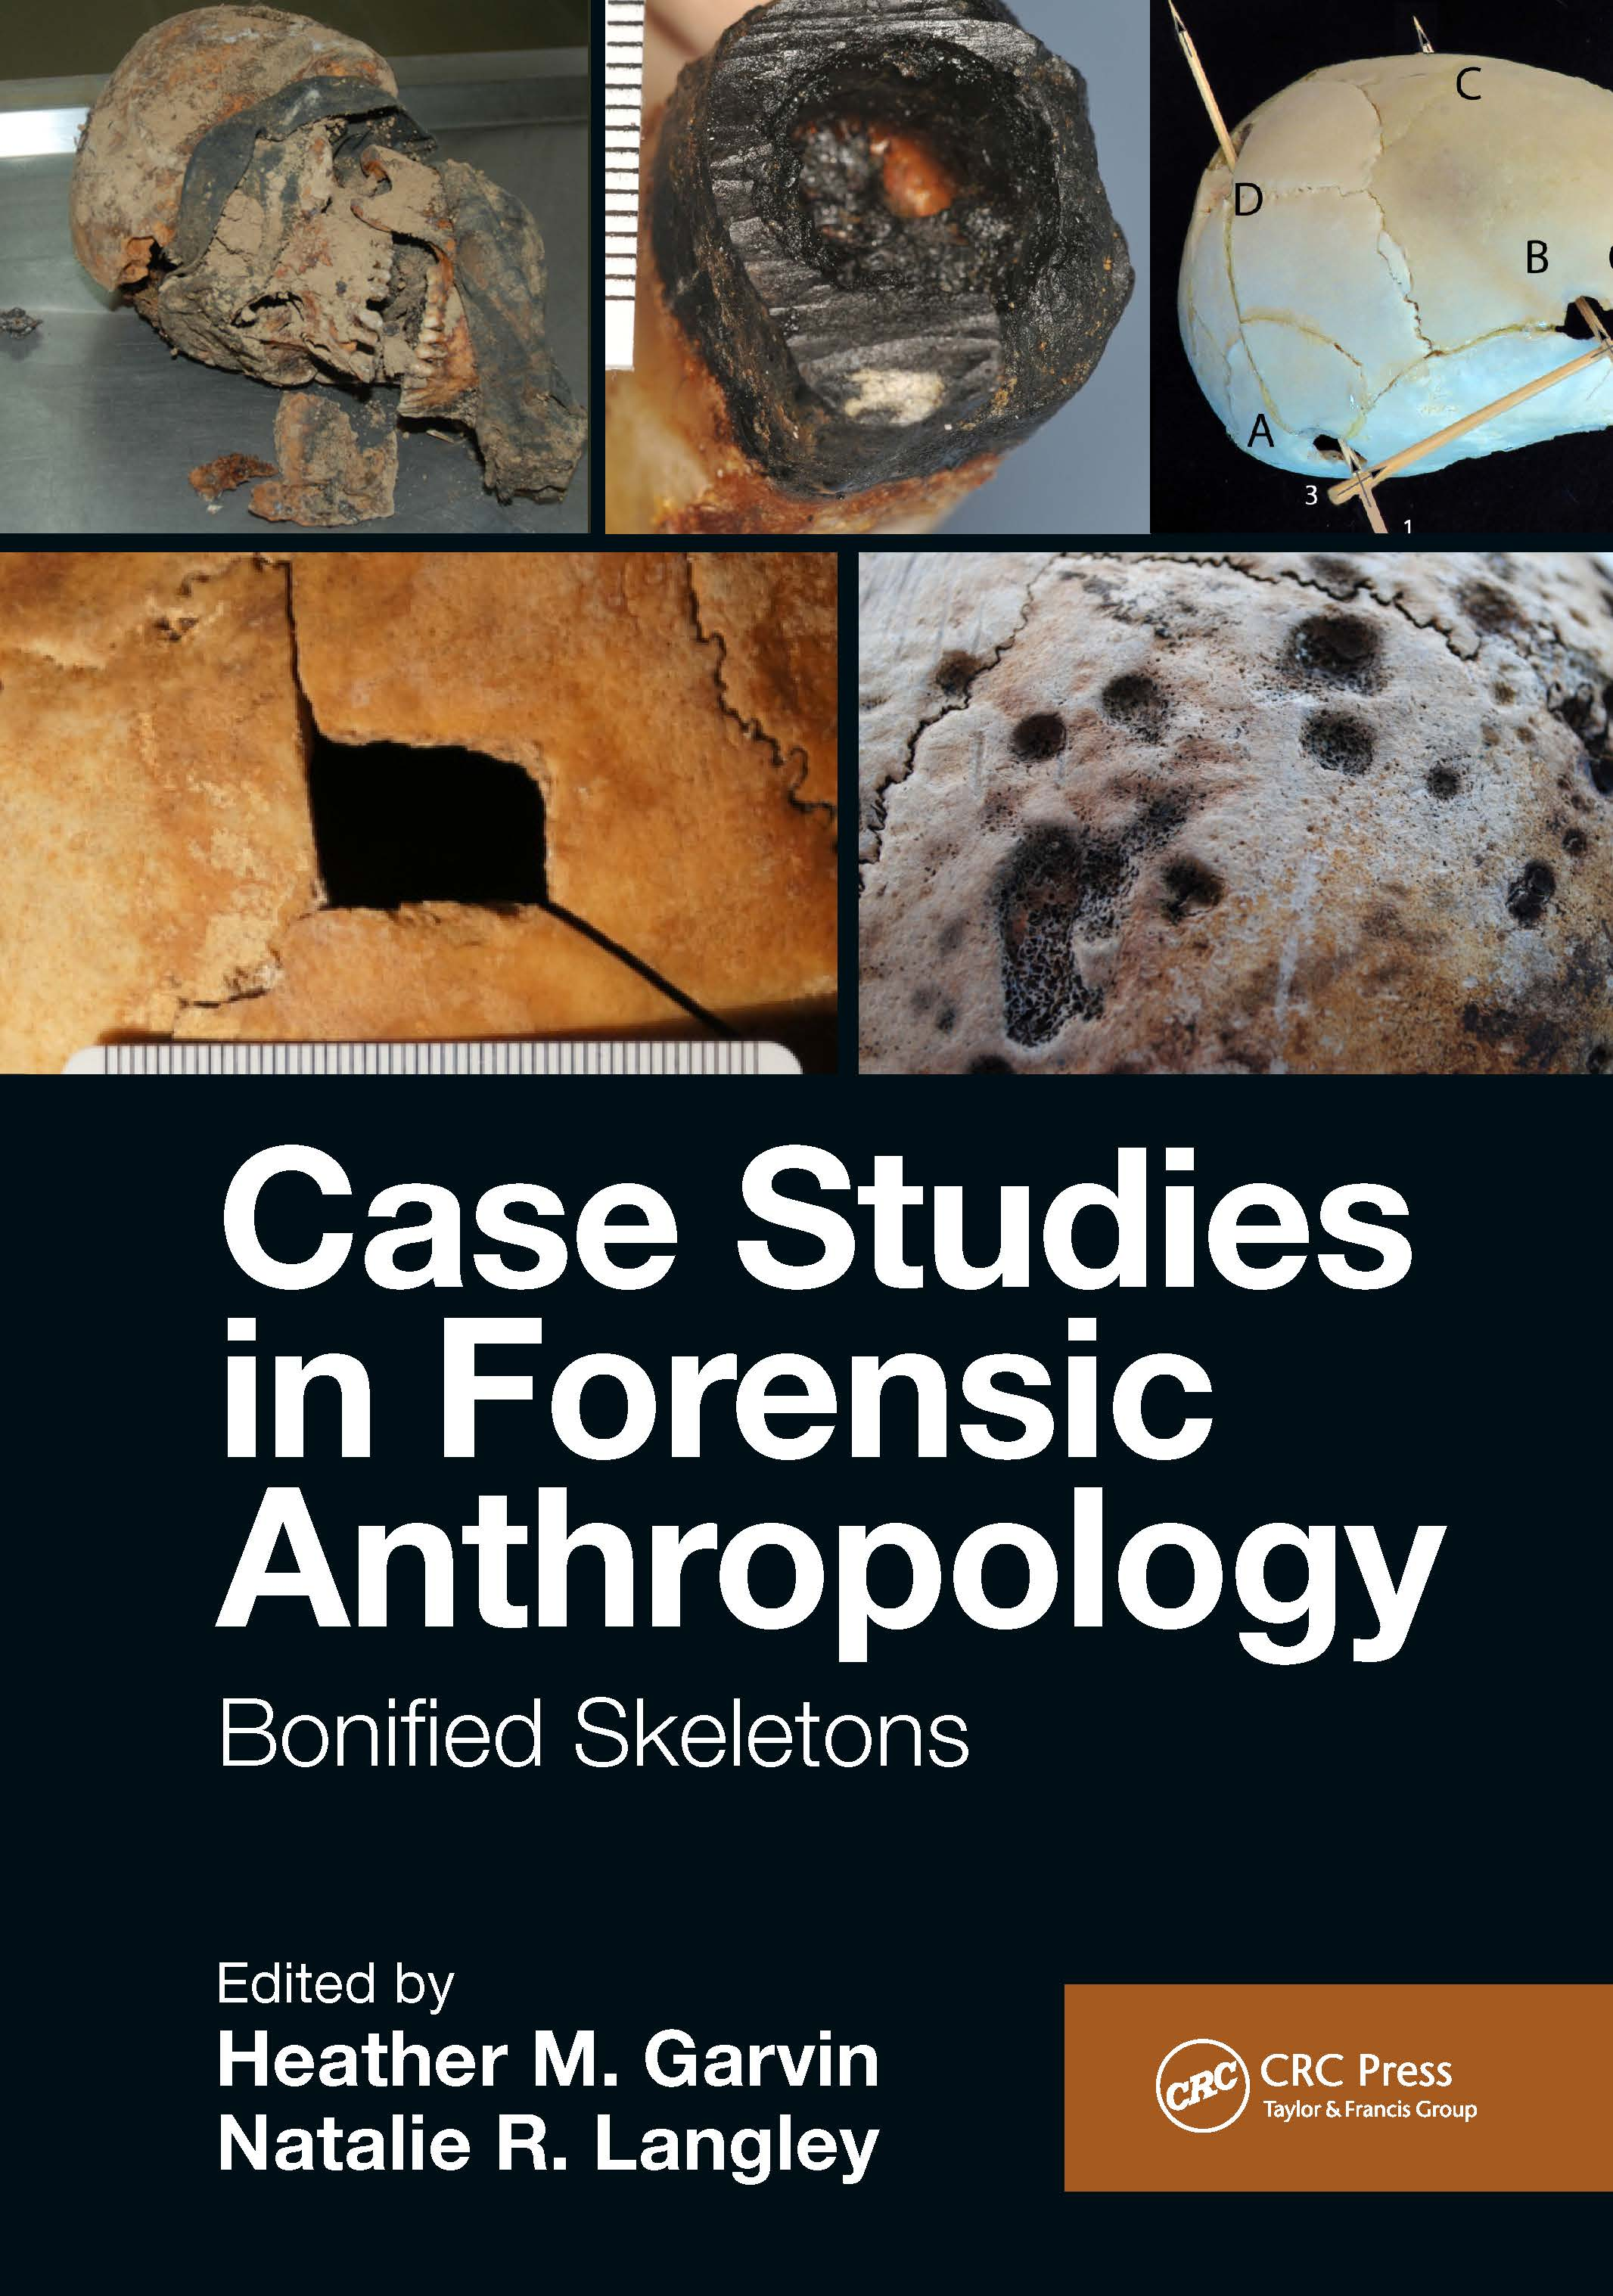 Case Studies in Forensic Anthropology: Bonified Skeletons book cover